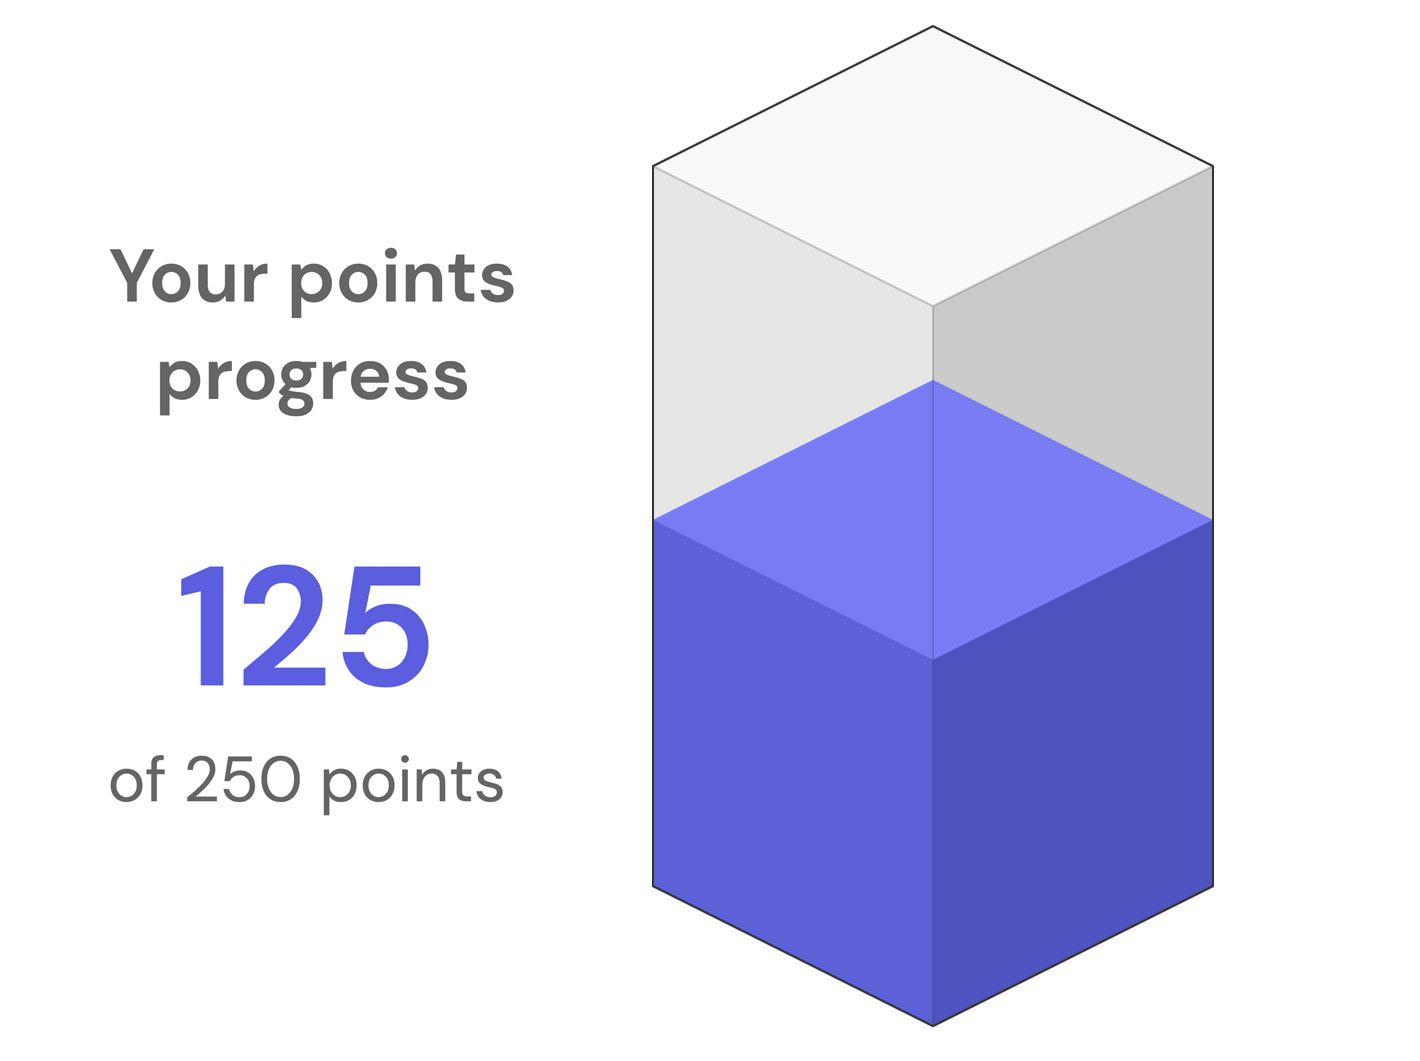 3D bar graph representing a customer's loyalty points